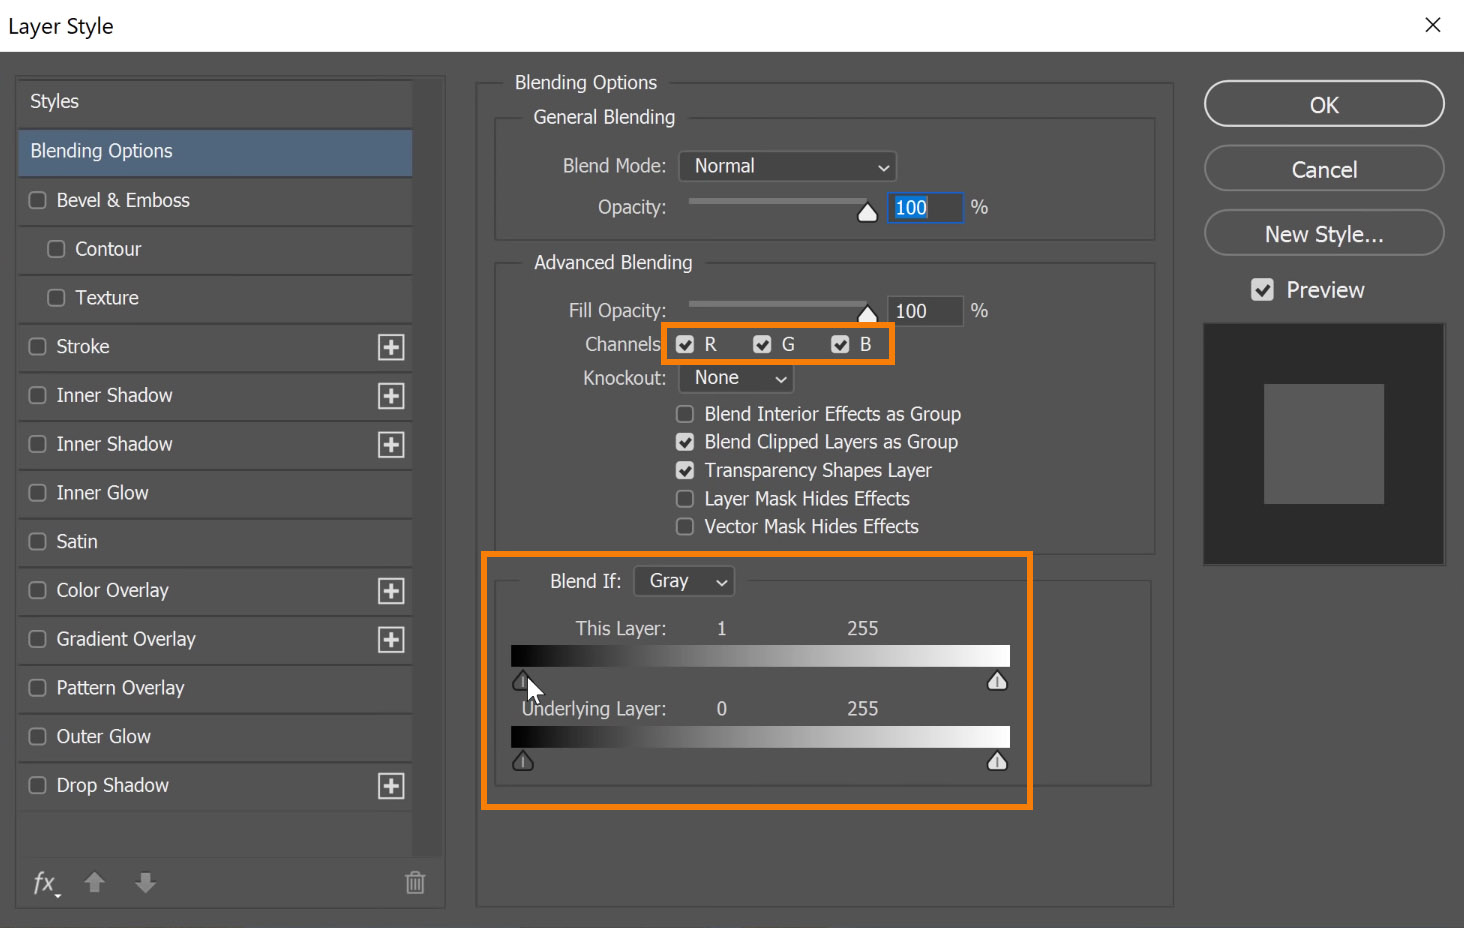 hide or reveal pixels based on the luminosity of each RGB channel and adjust it in the Blend If sliders